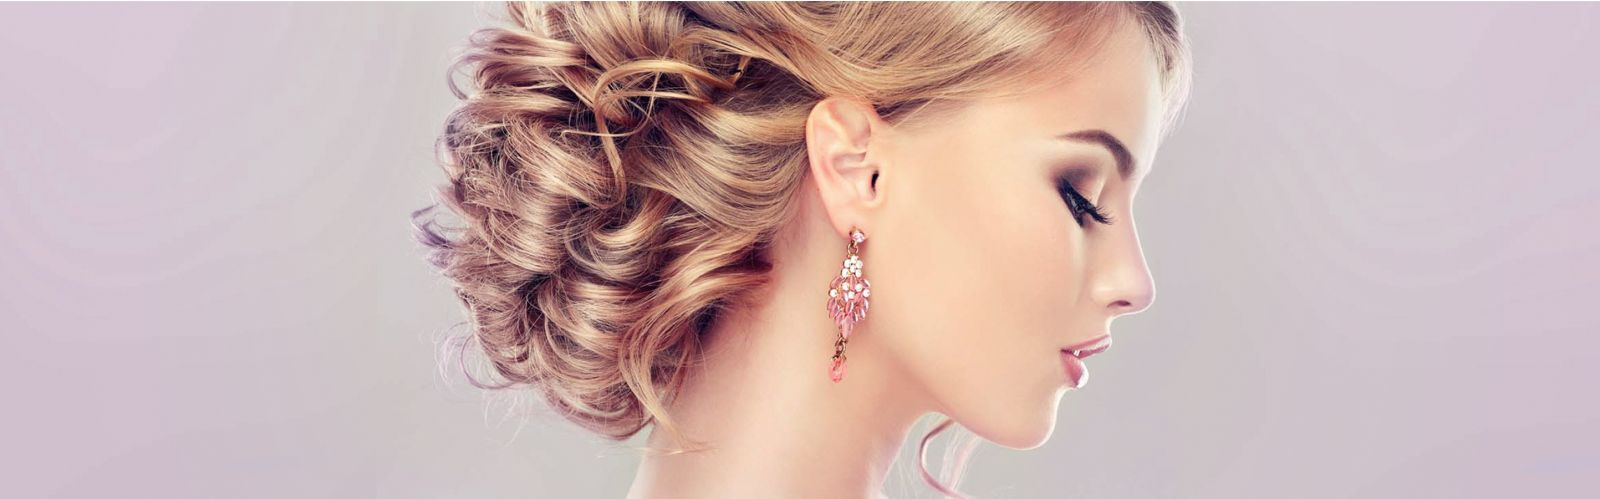 Formal Hair Styling Services